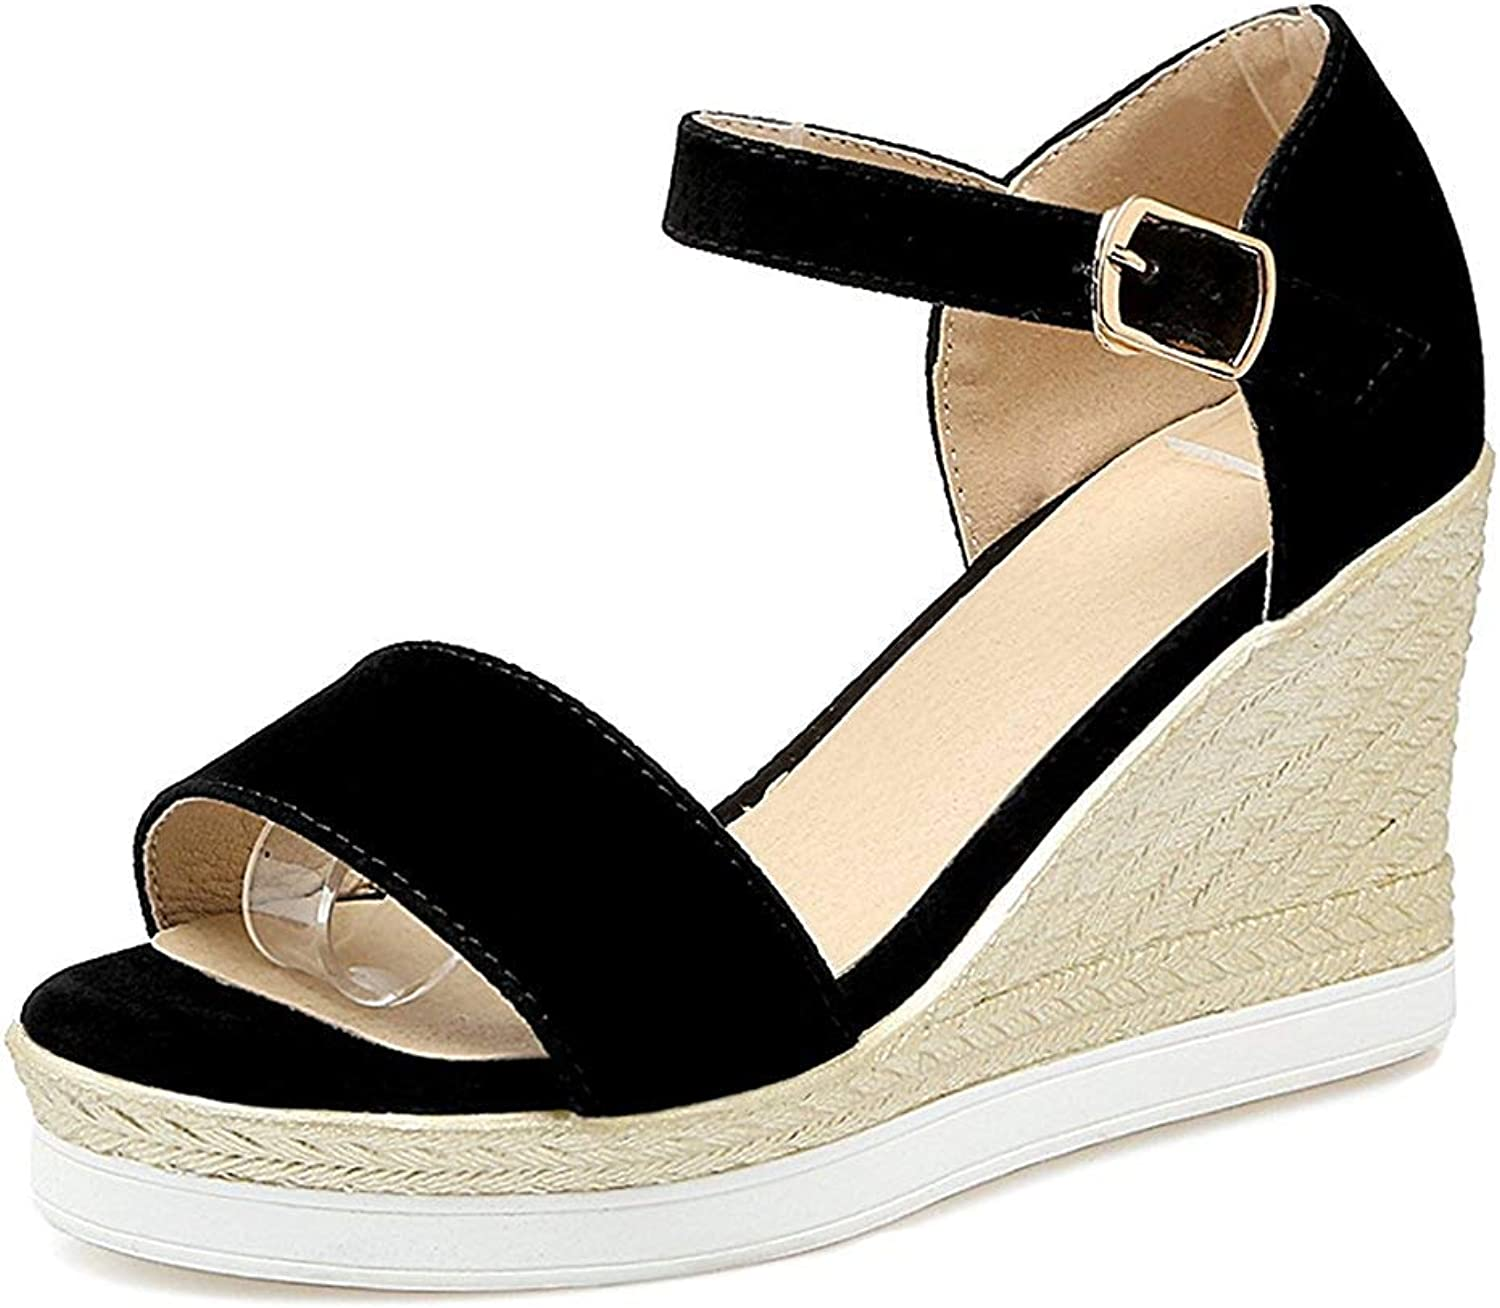 Unm Women's Open Toe Wedge Sandals with Ankle Strap - Buckled Platform Casual - color-Contrasted High Heel